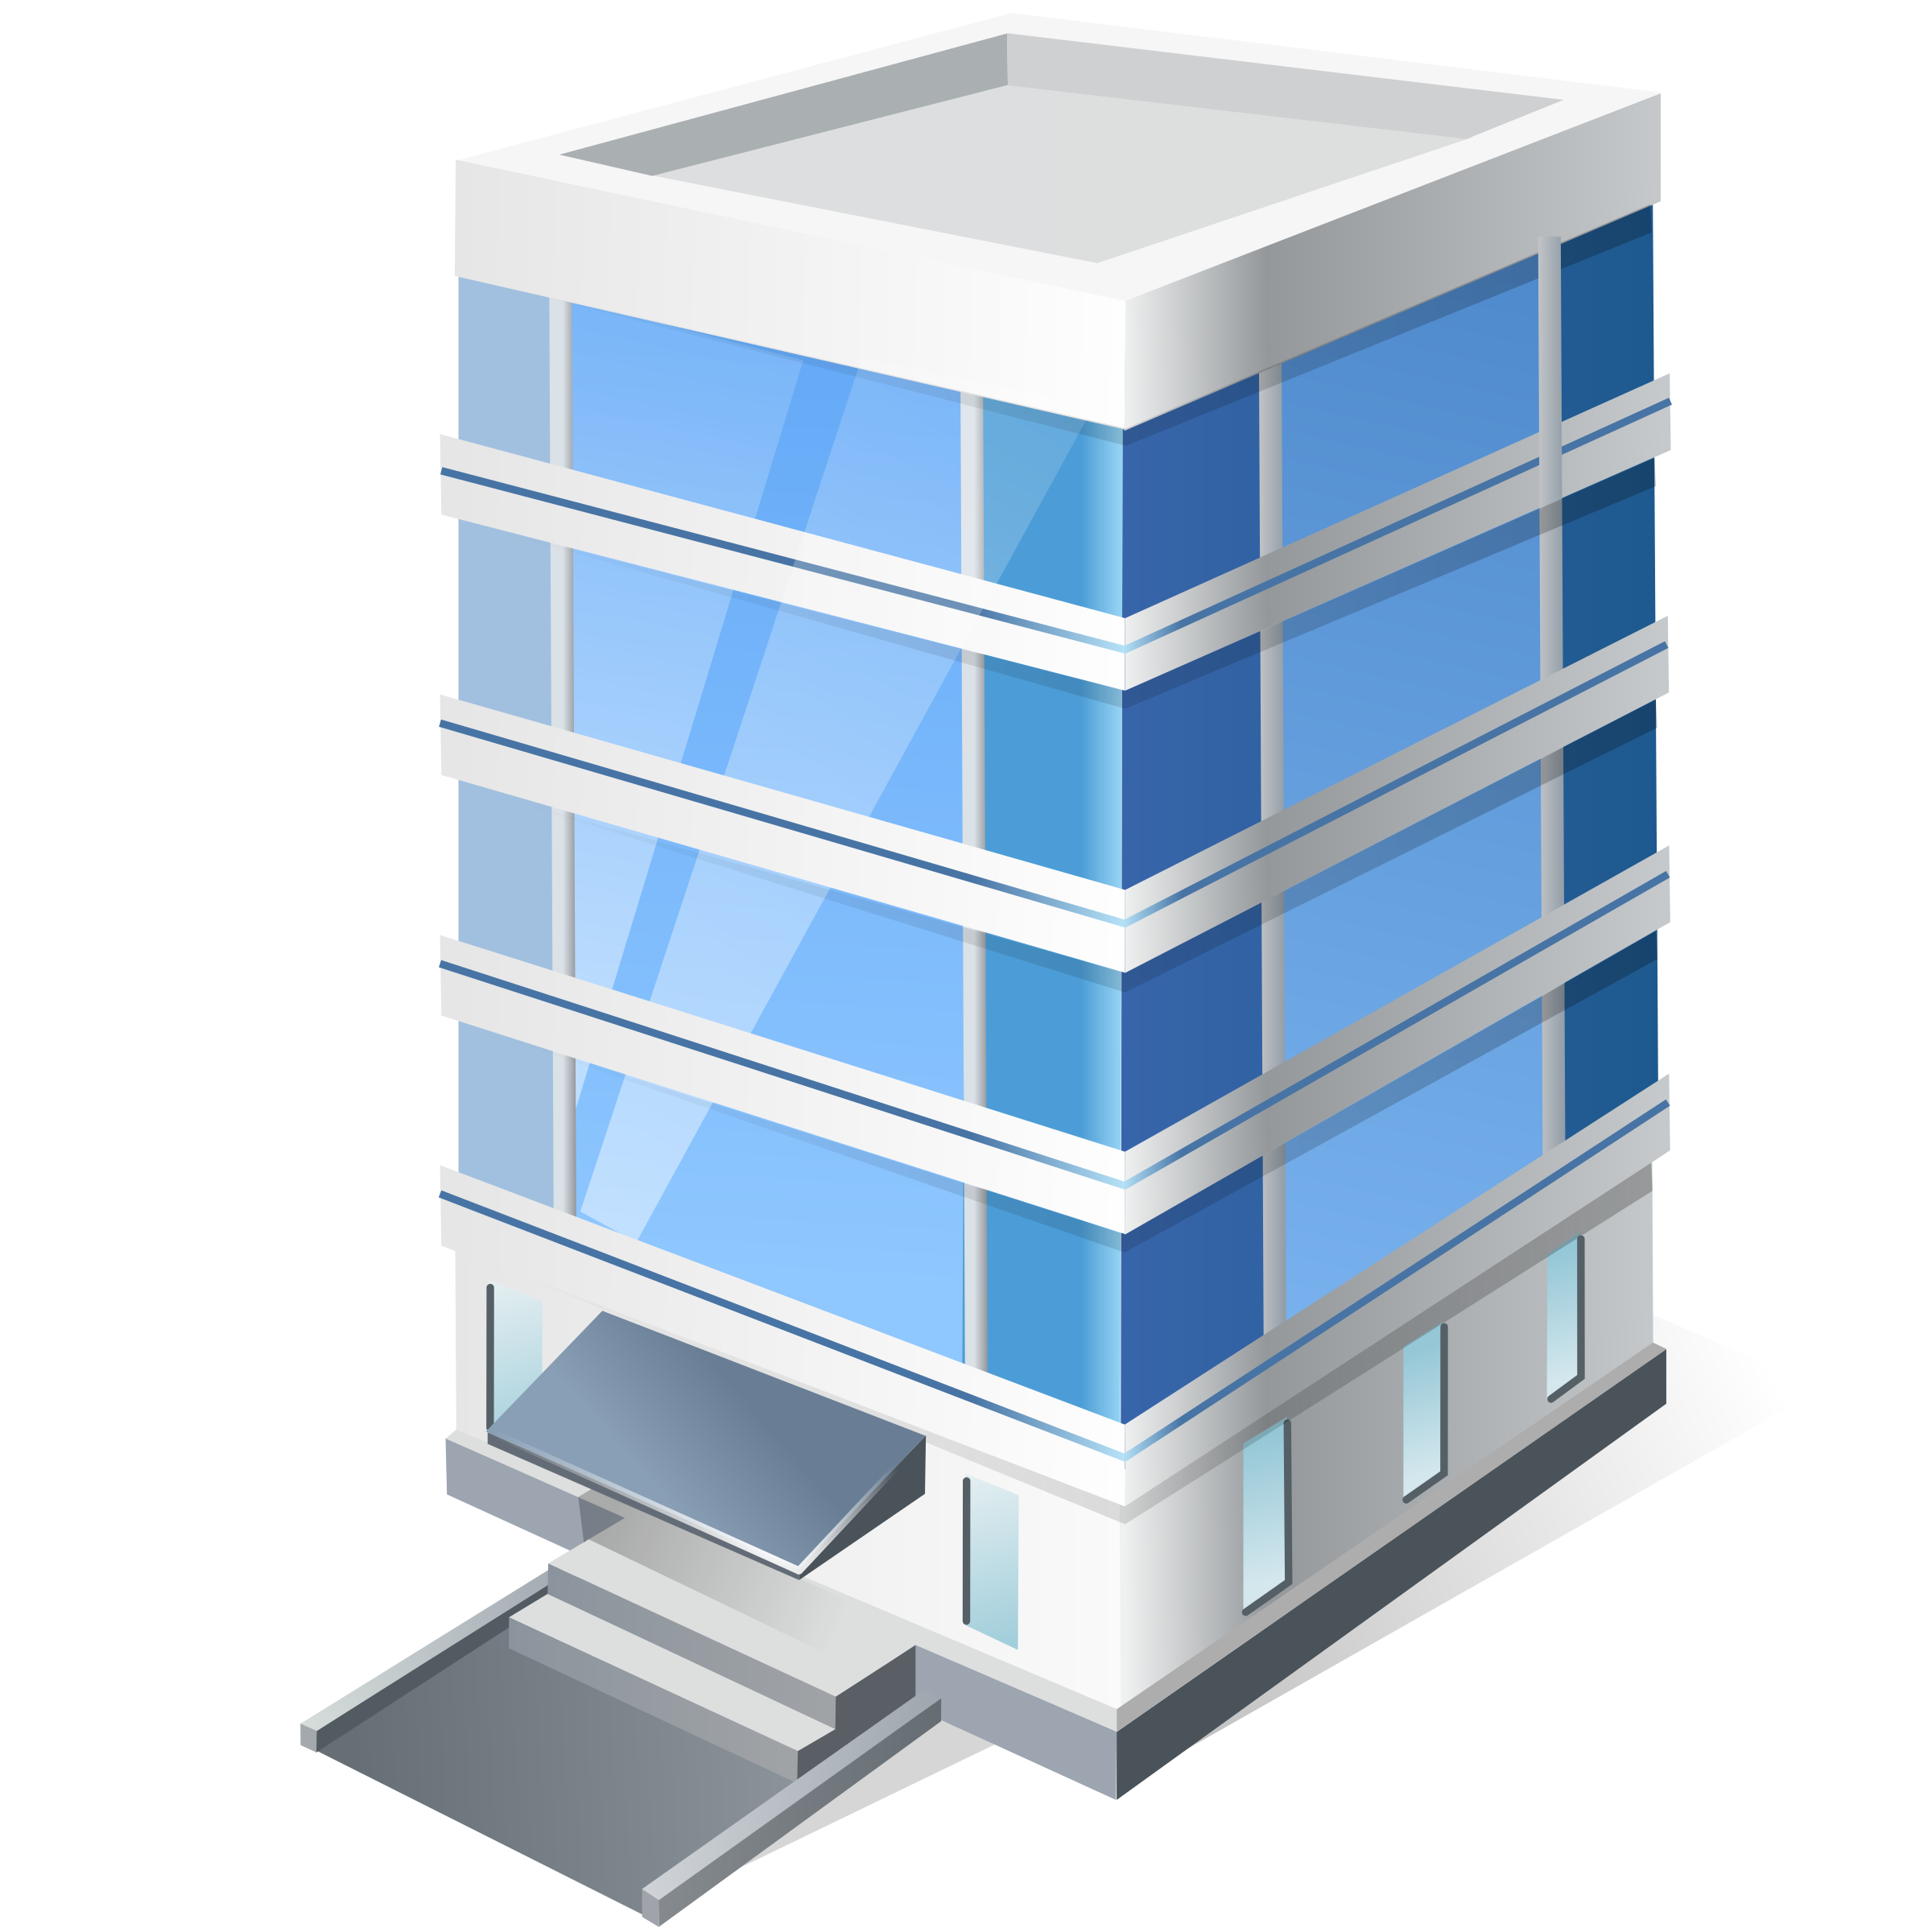 3d-office-building-clipart-png. BIG IMAGE (PNG)